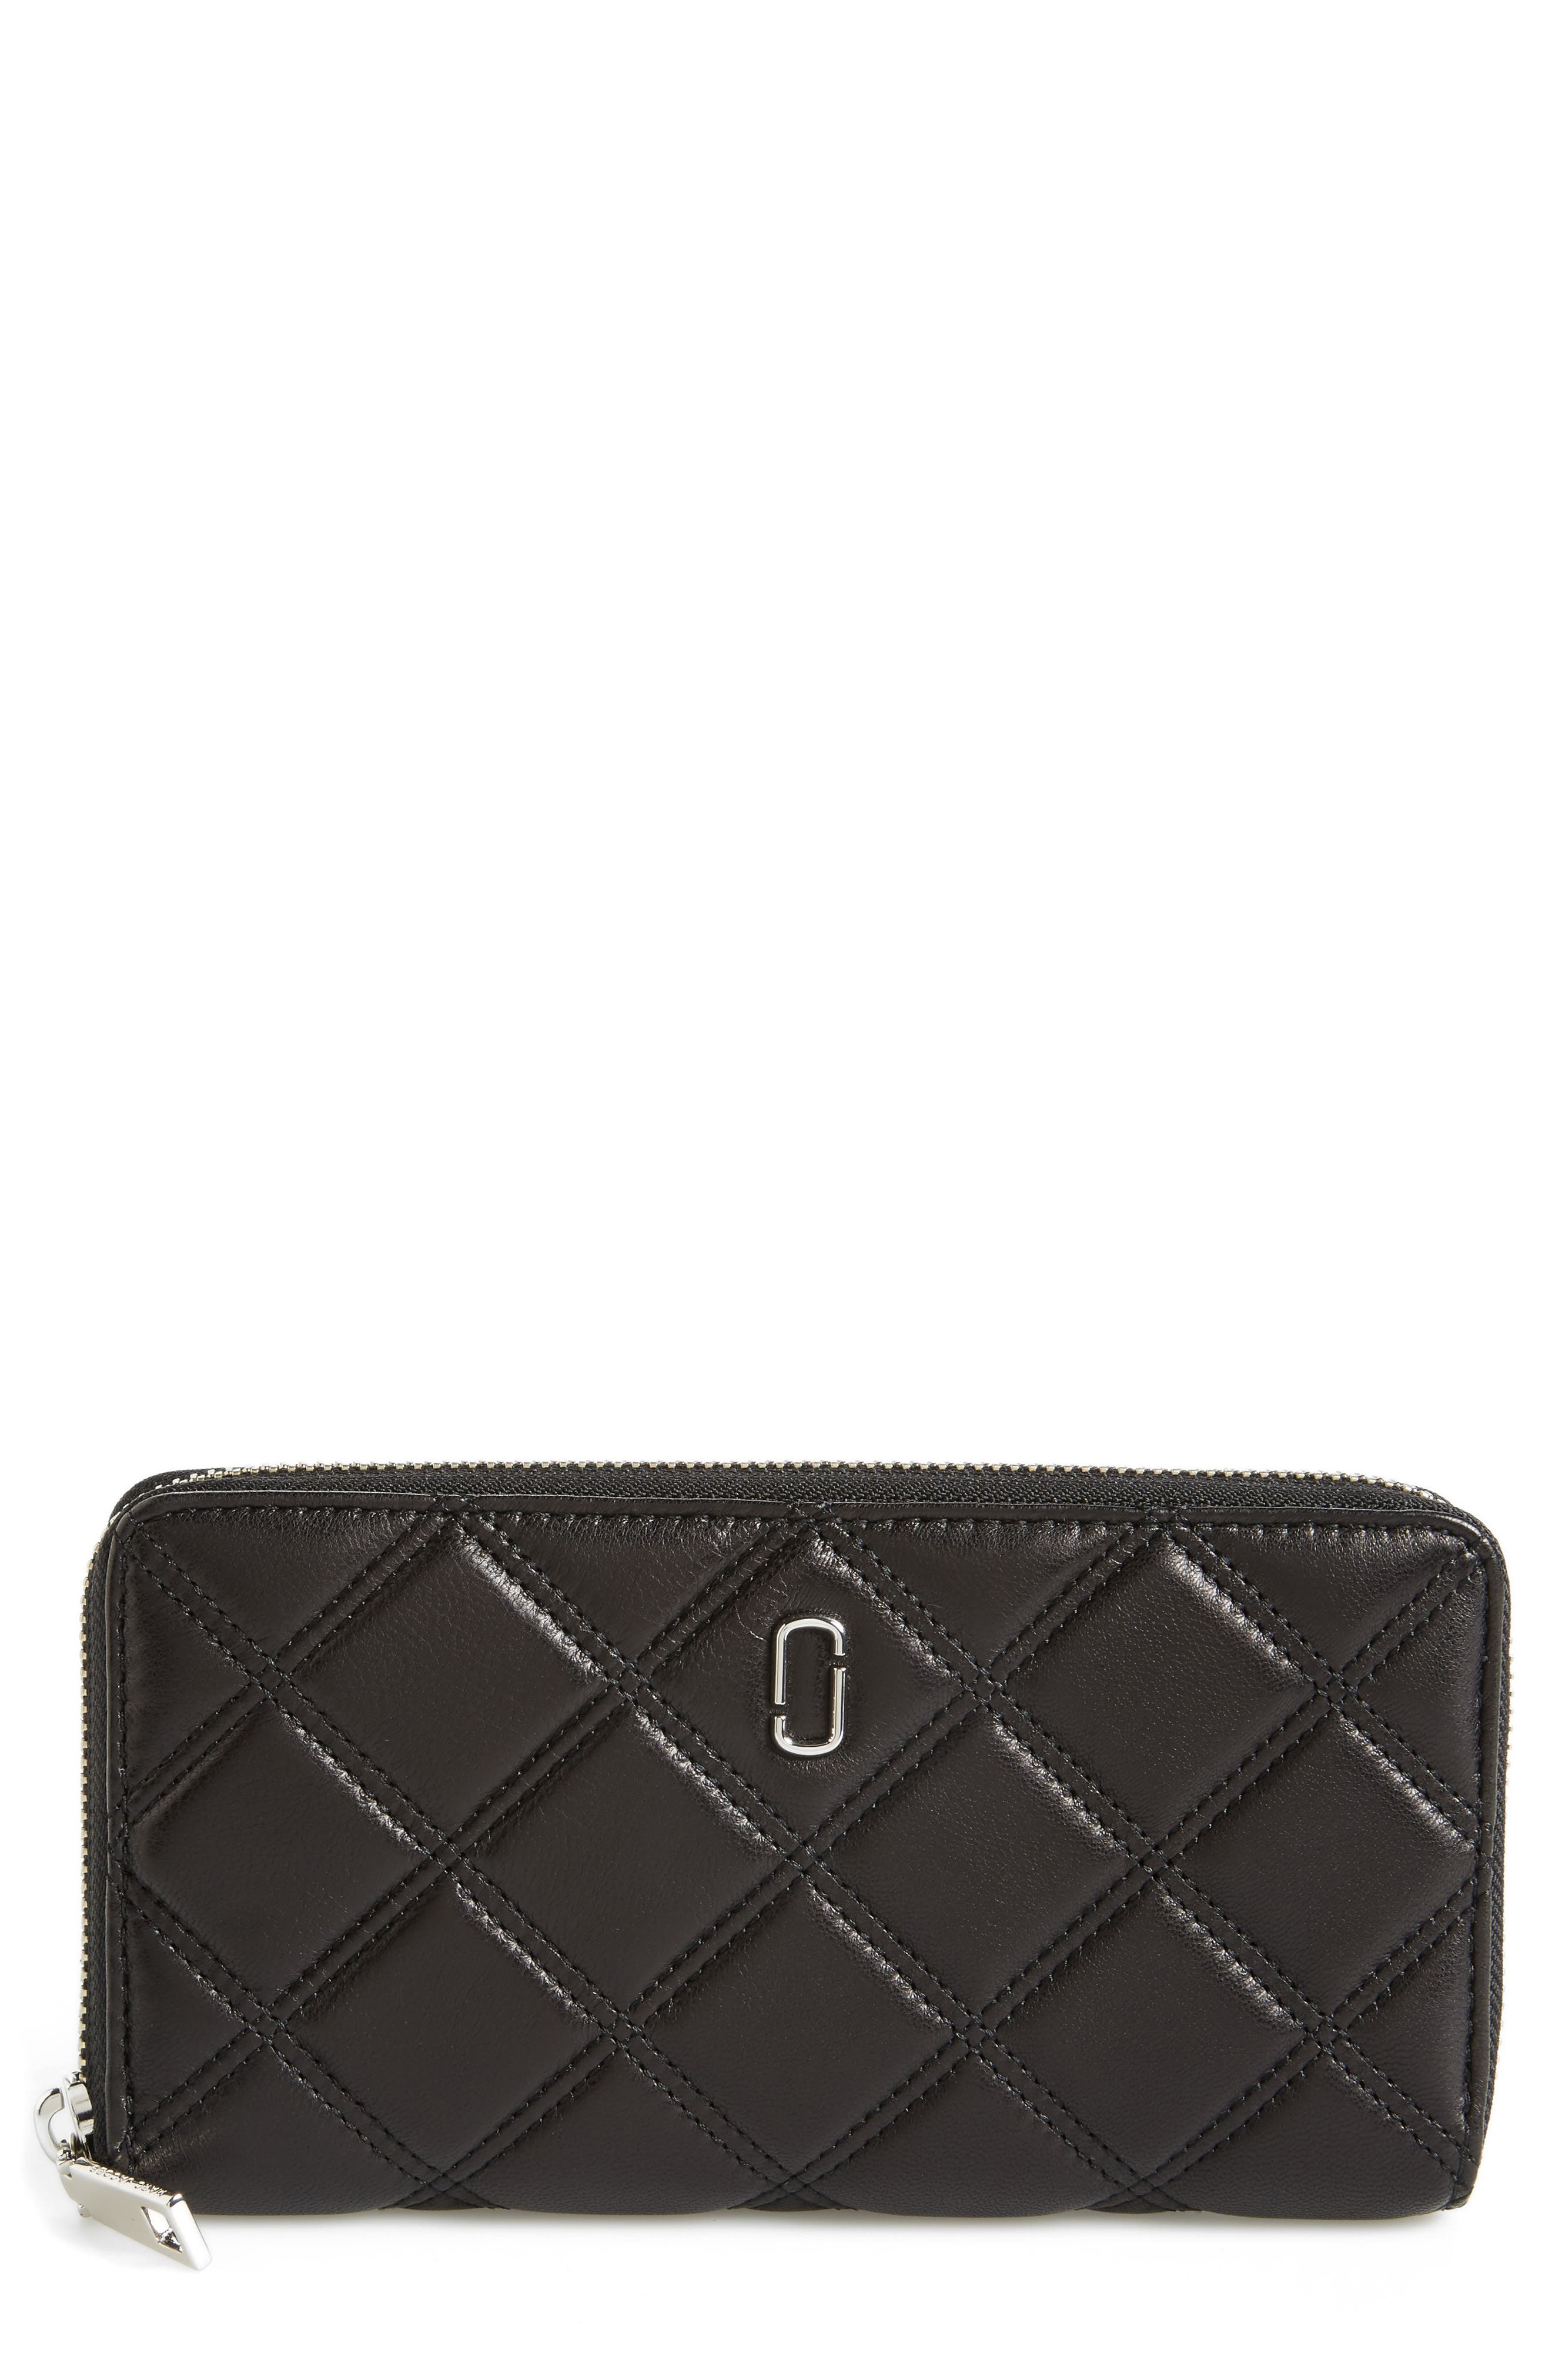 Quilted Leather Zip Wallet,                         Main,                         color, Black